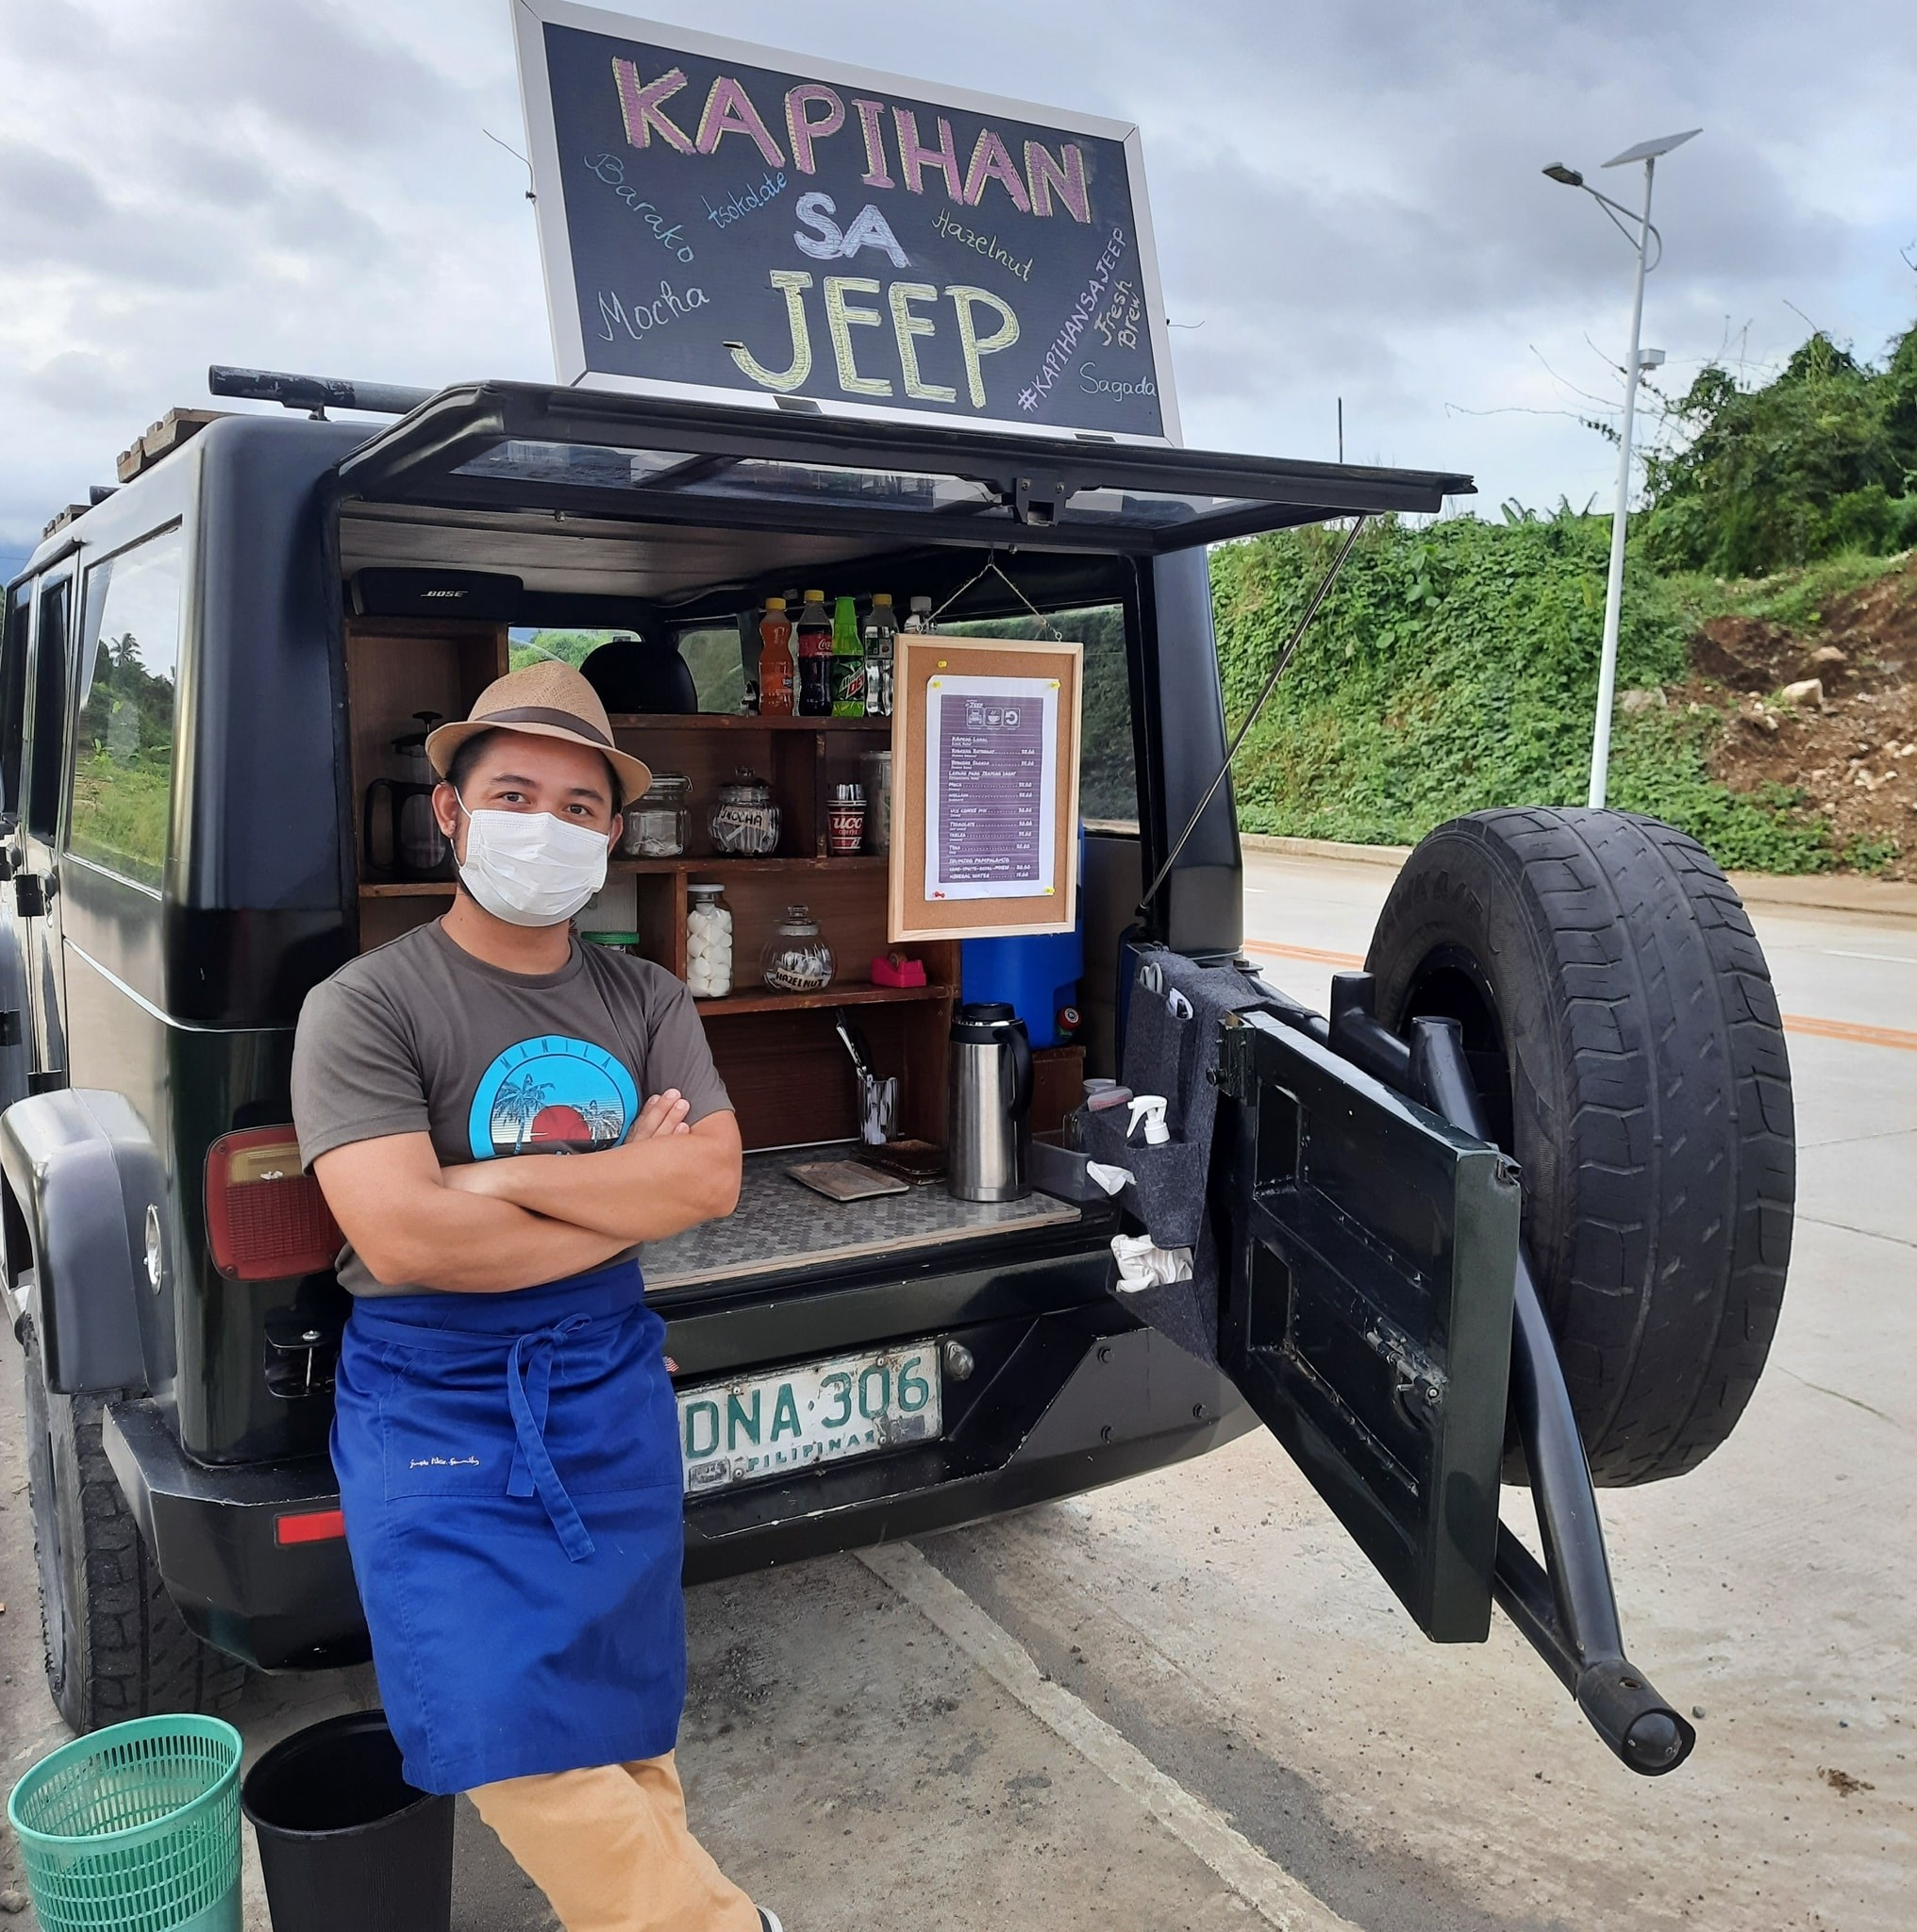 Stylish! This mobile coffee shop gets you your brew from the back of a Jeep!